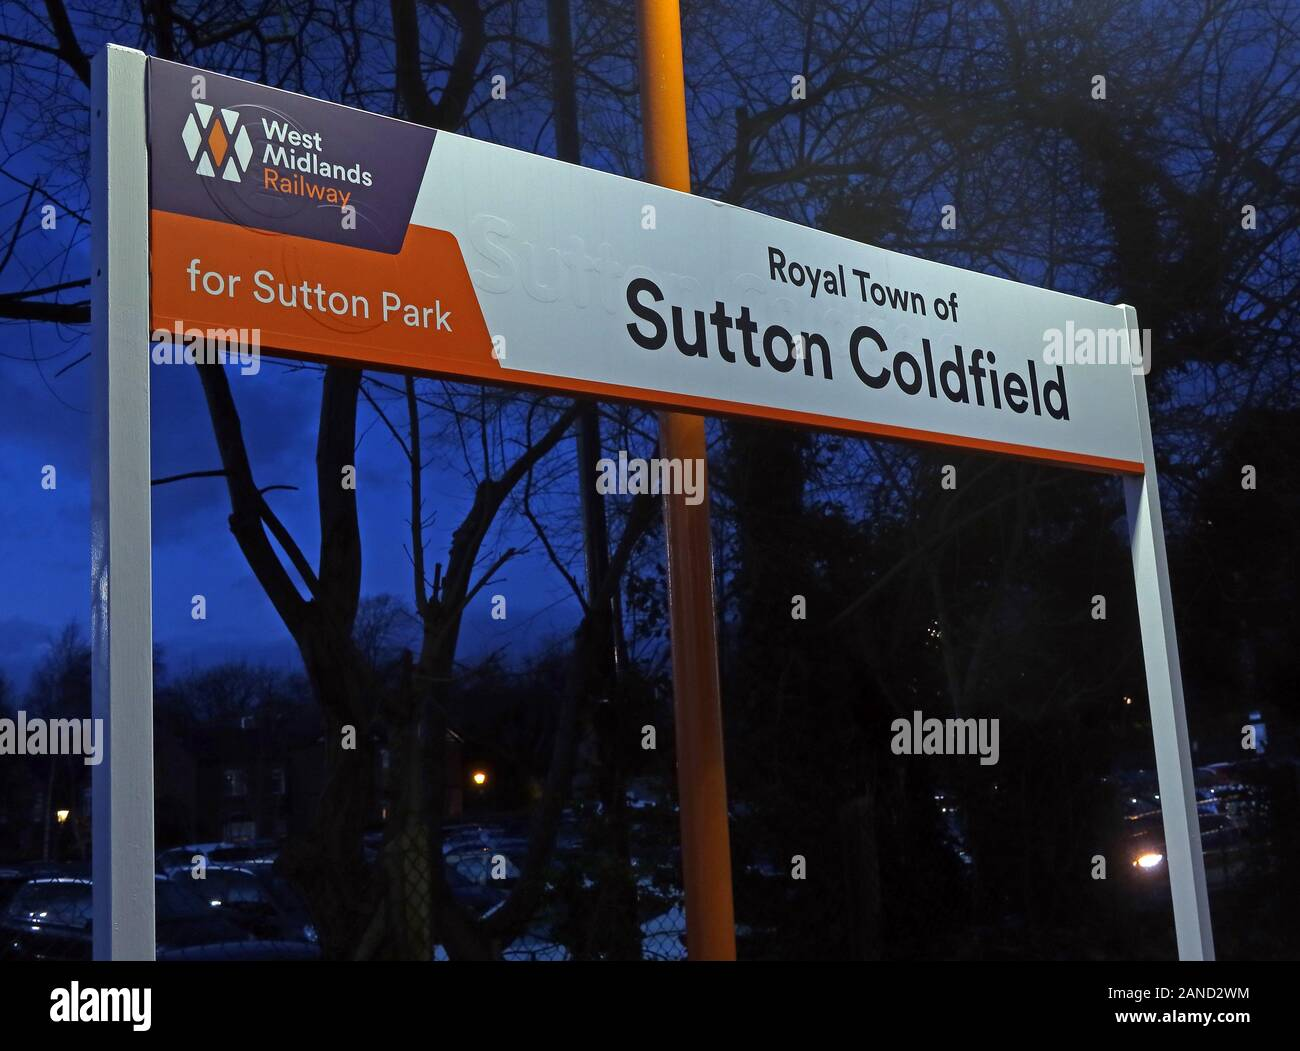 Royal Town of Sutton Coldfield sign on station, West Midlands railway, Birmingham, England, UK Stock Photo